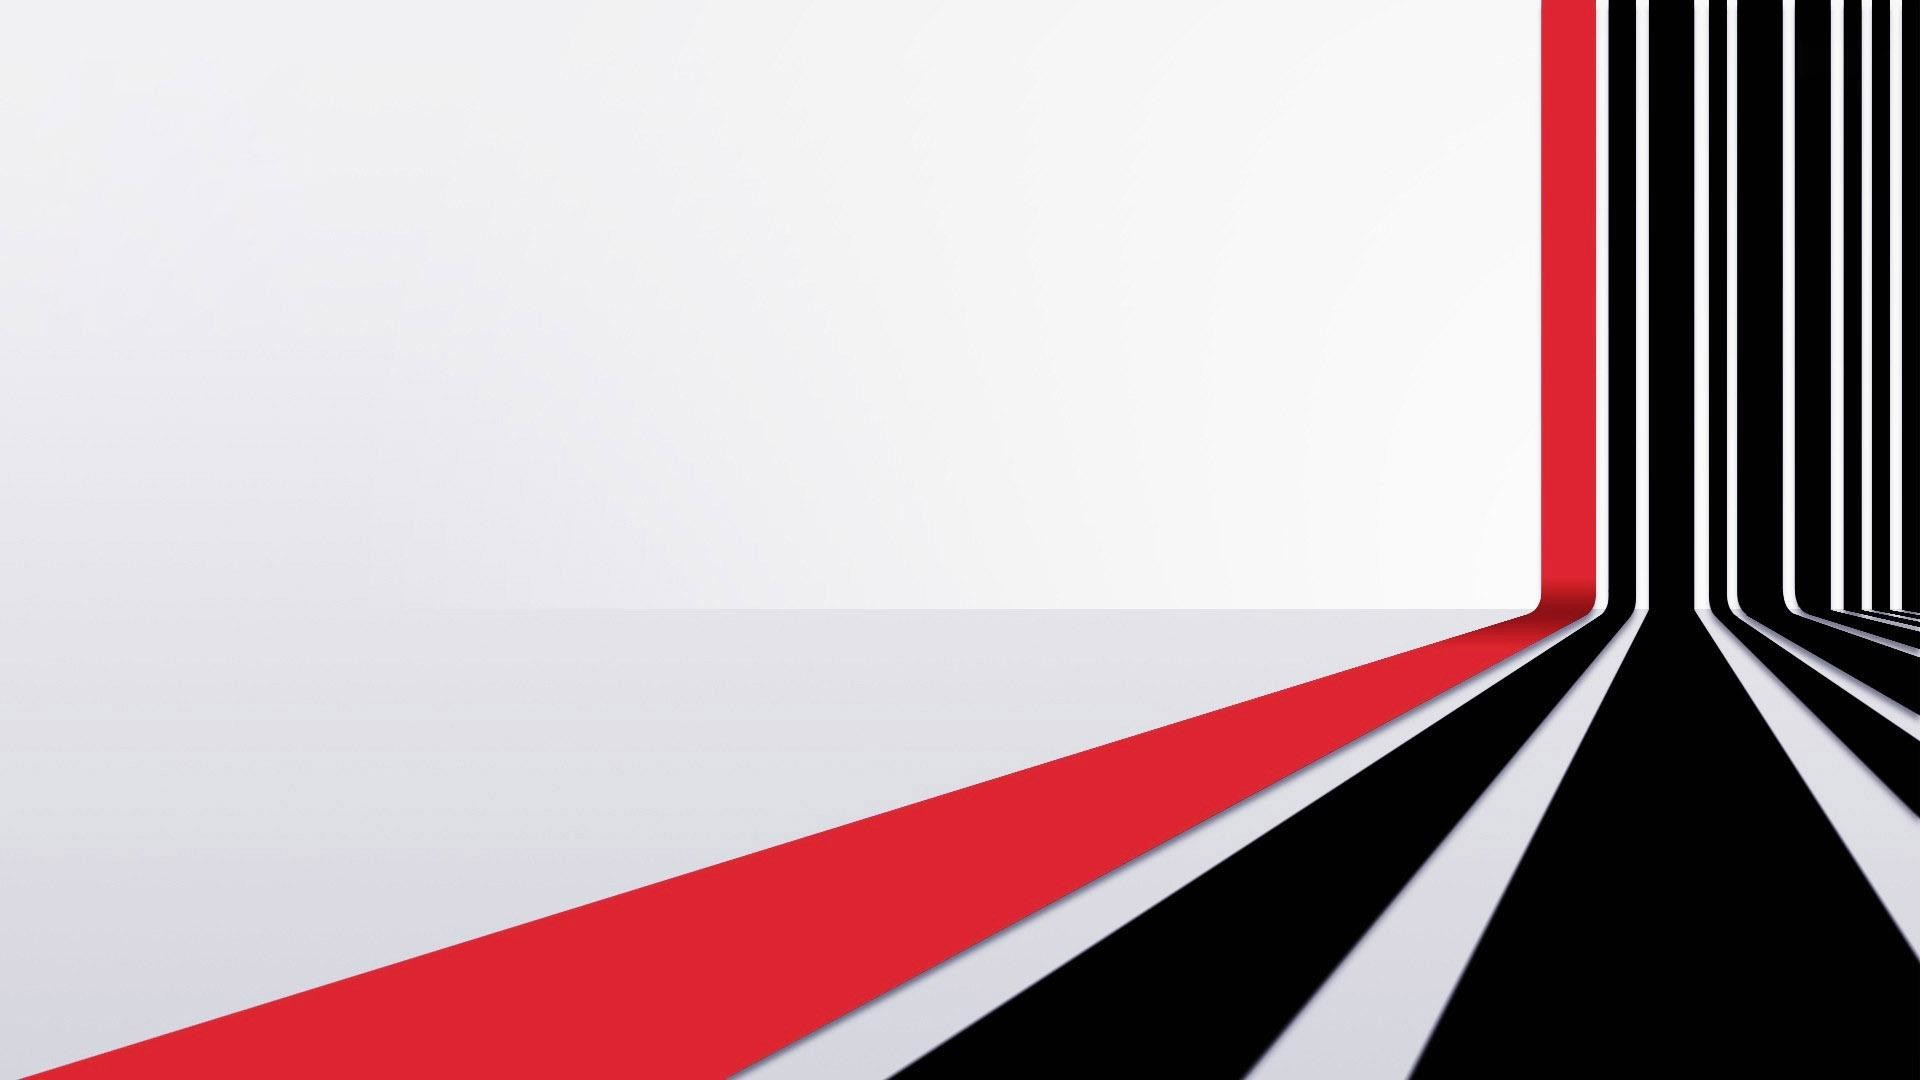 Black Red And White Wallpaper 64 Images